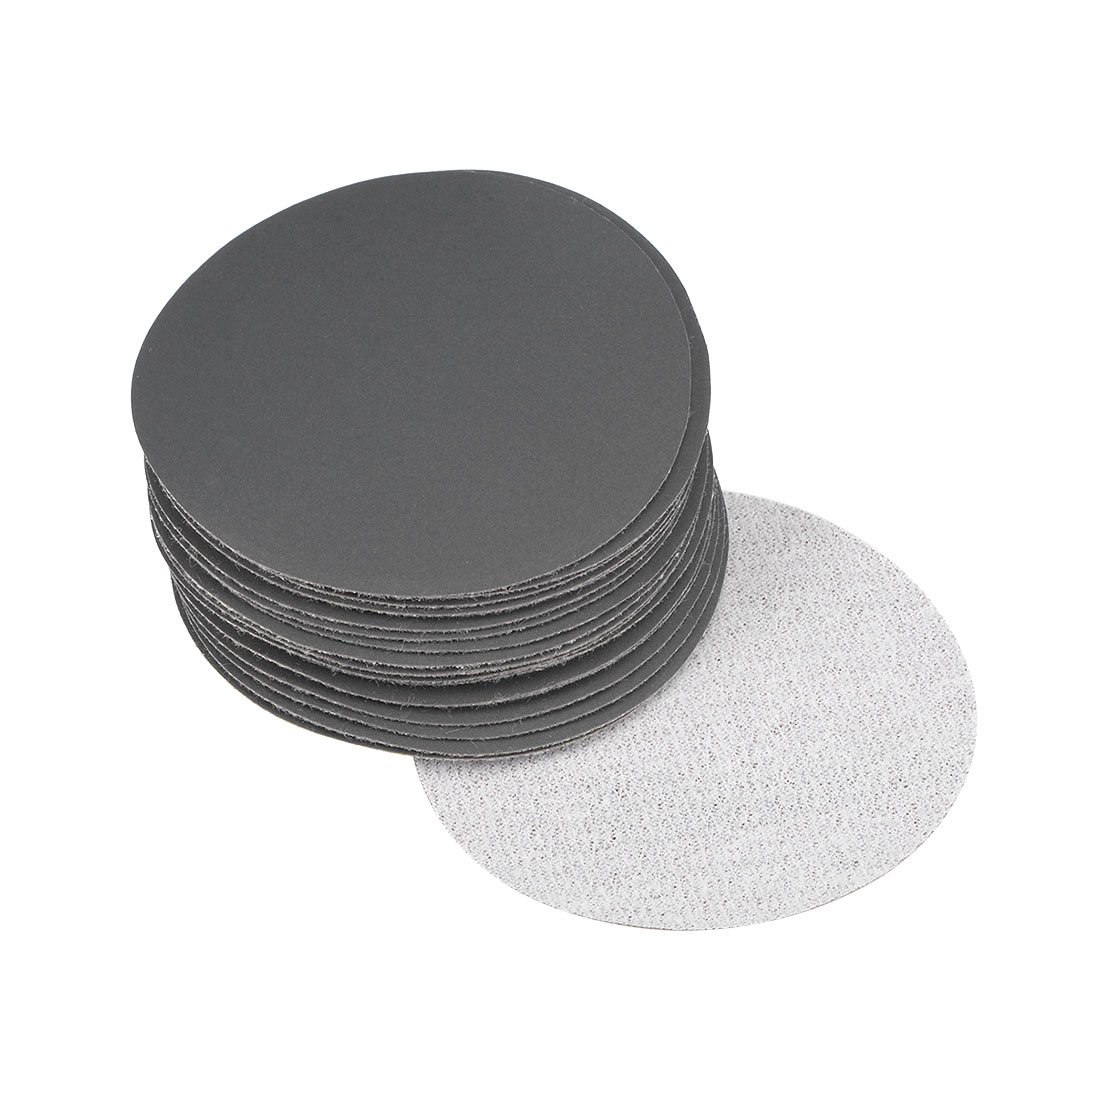 3 inch Wet Dry Discs 800 Grit Hook and Loop Sanding Disc Silicon Carbide 20pcs